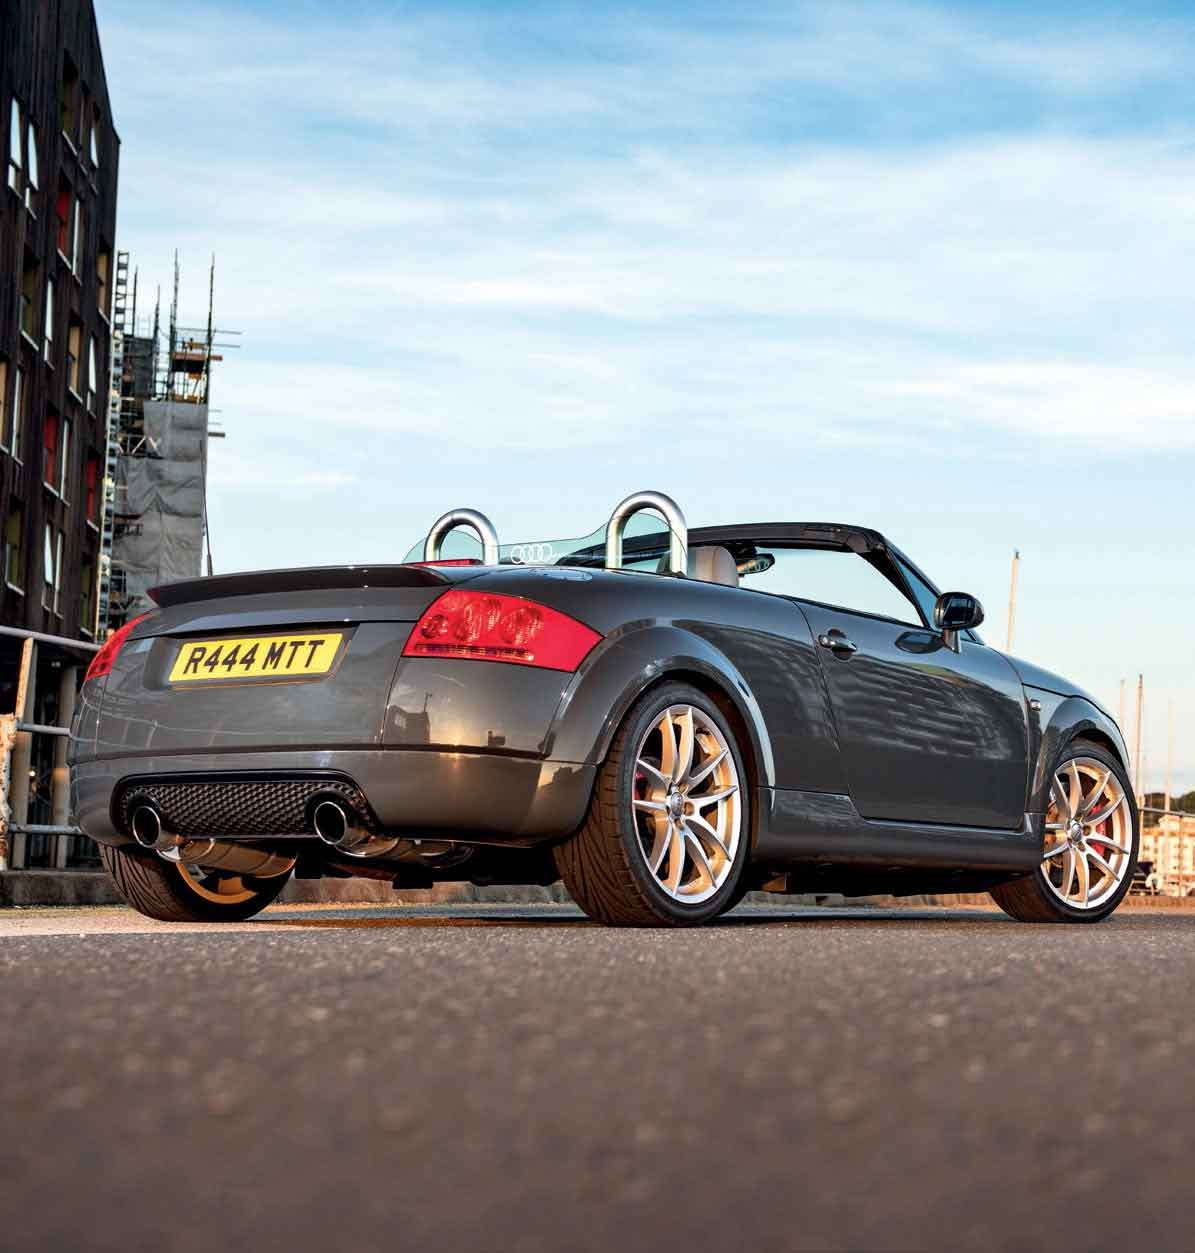 280hp Tuned Audi Tt 18t Roadster 8n 20v Bam Turbocharged Engined